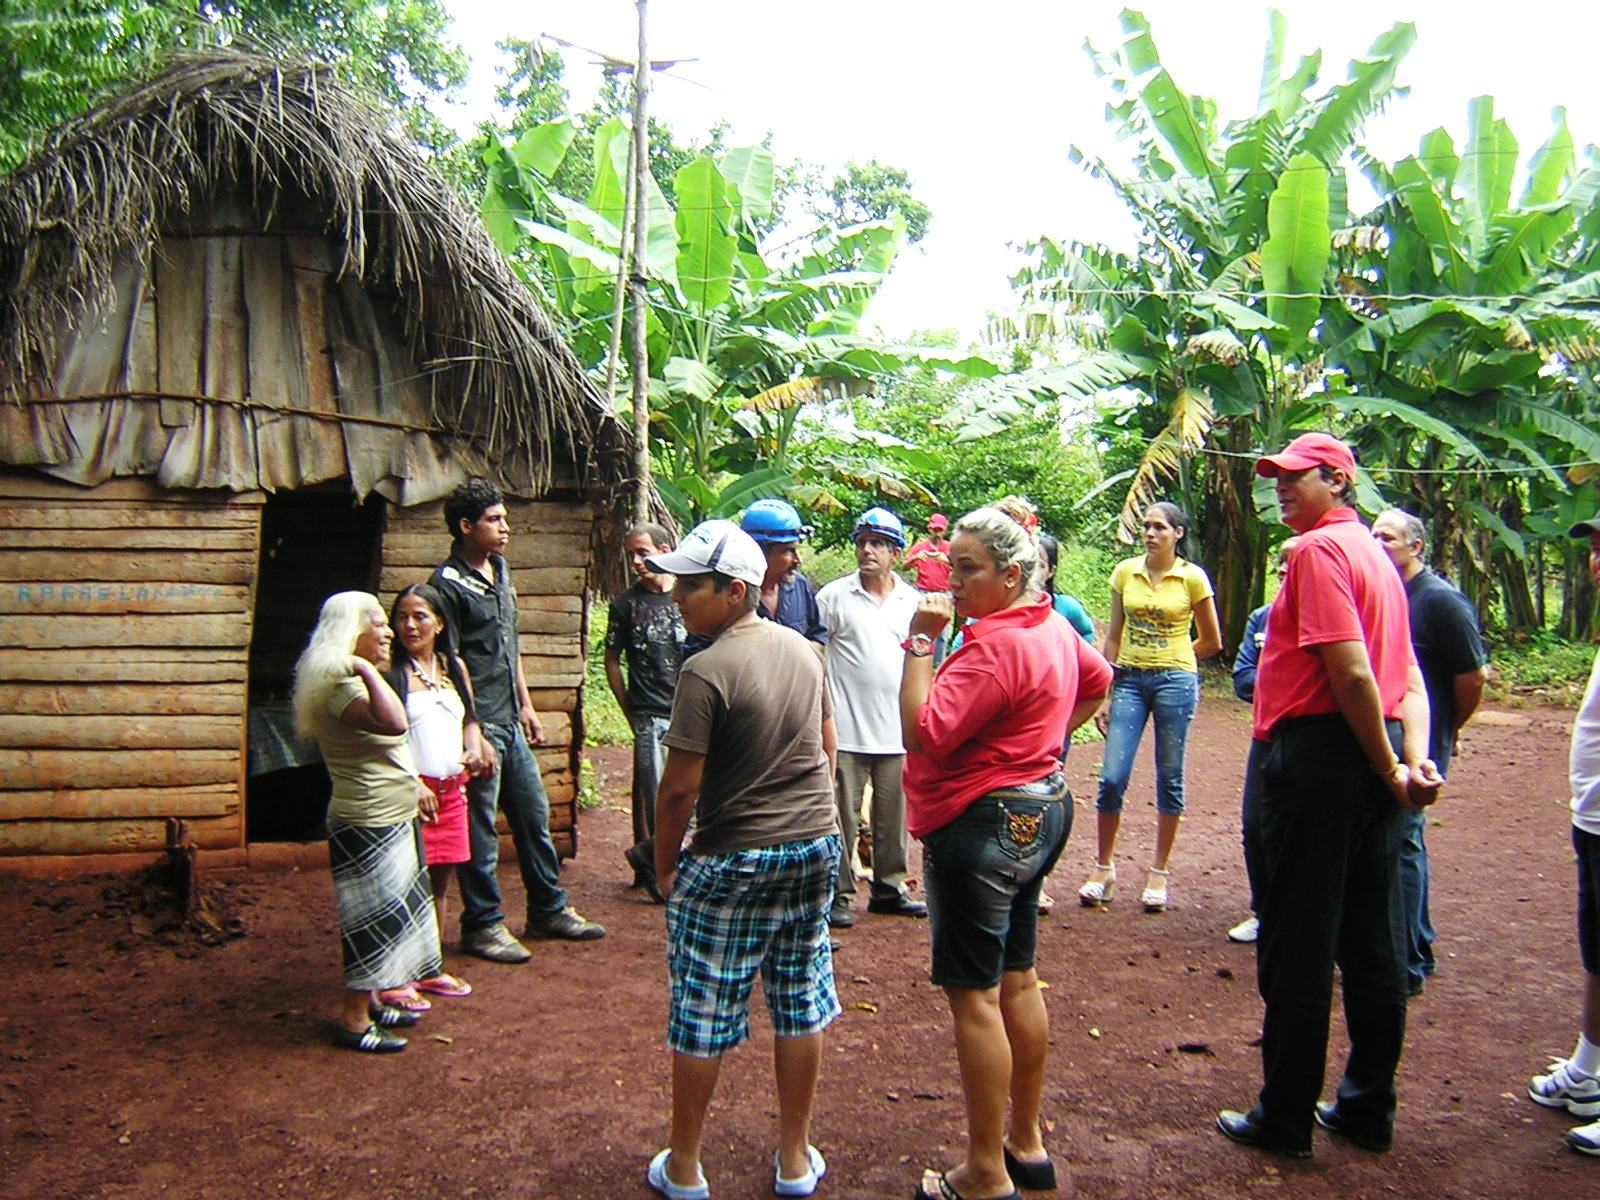 Caves in Camaguey